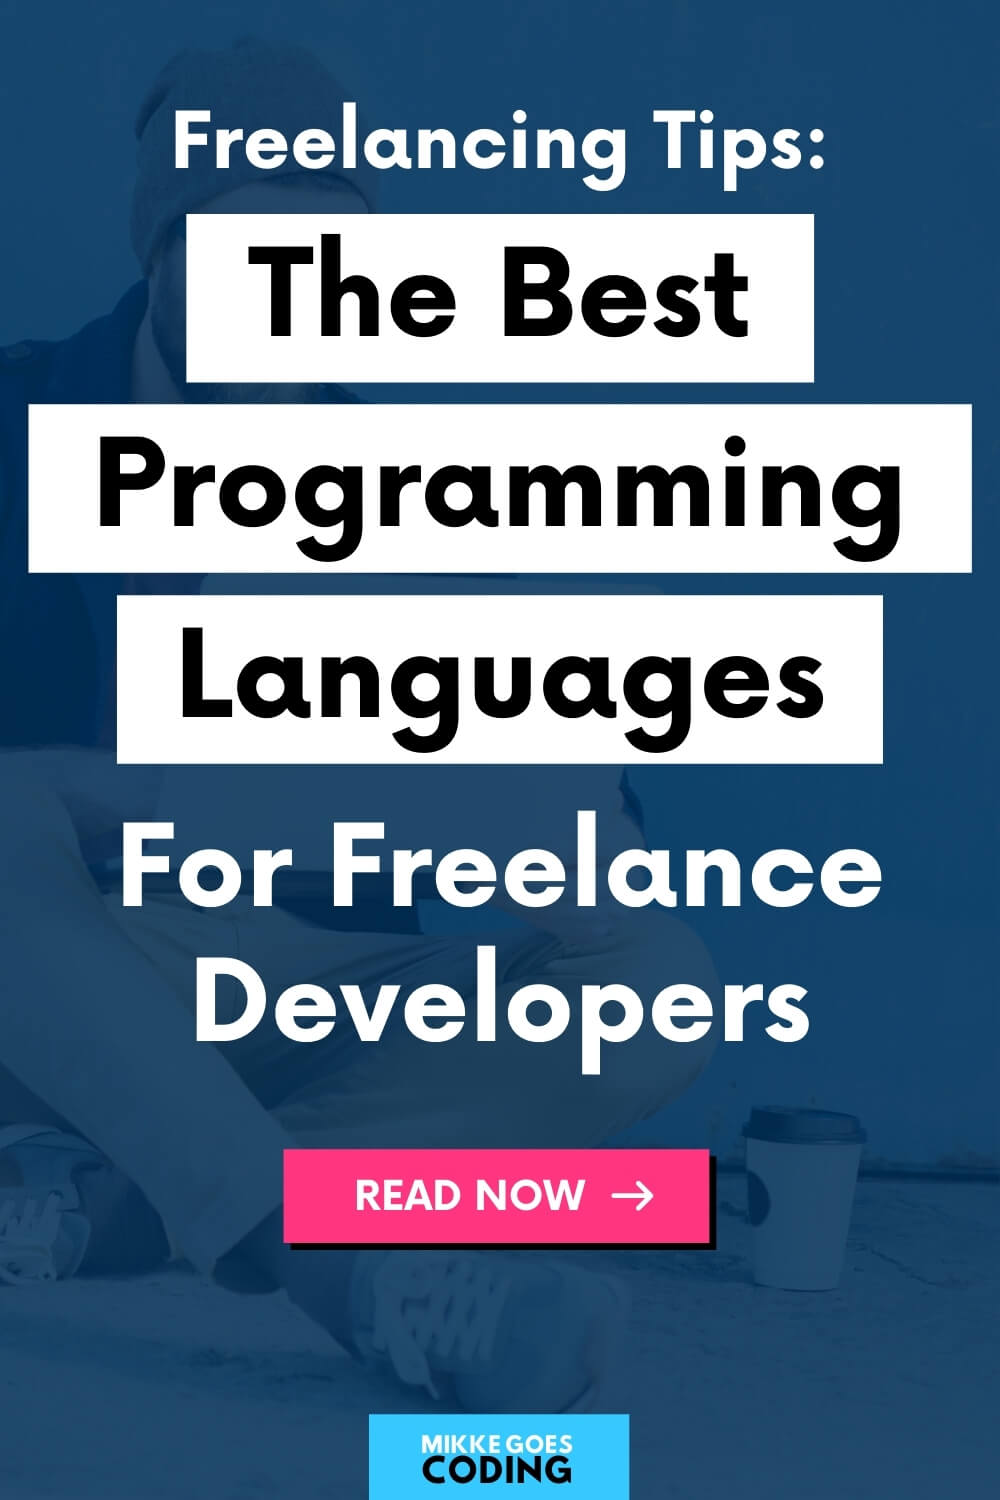 The best programming language for freelancing developers – Make money coding